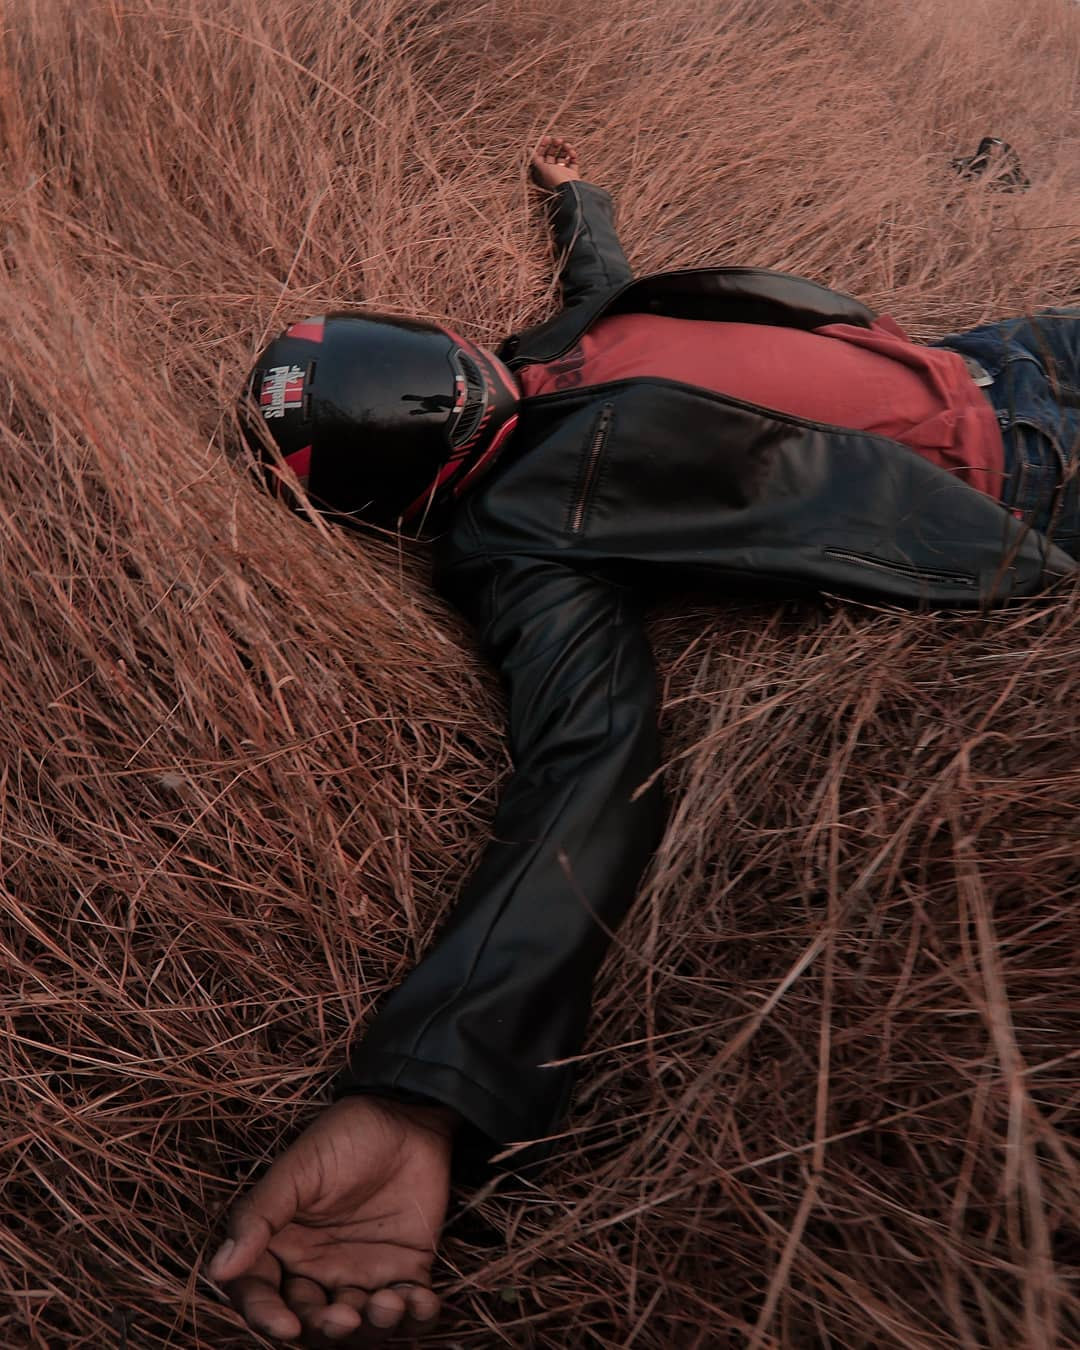 Motorcycle Rider Lying on Ground